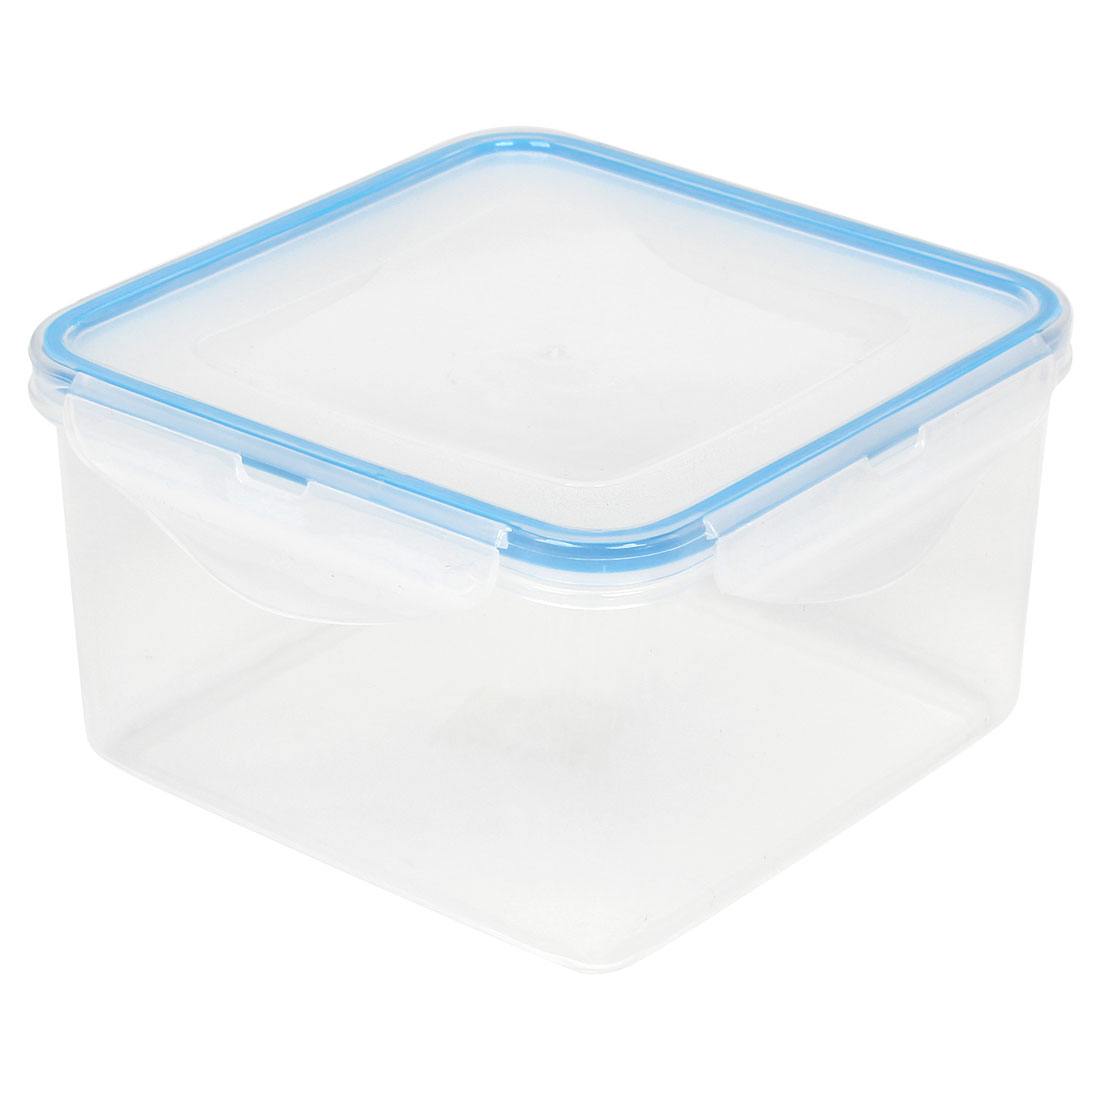 White Blue Squar Shaped Plastic Snack Lunch Box Dinner Bucket